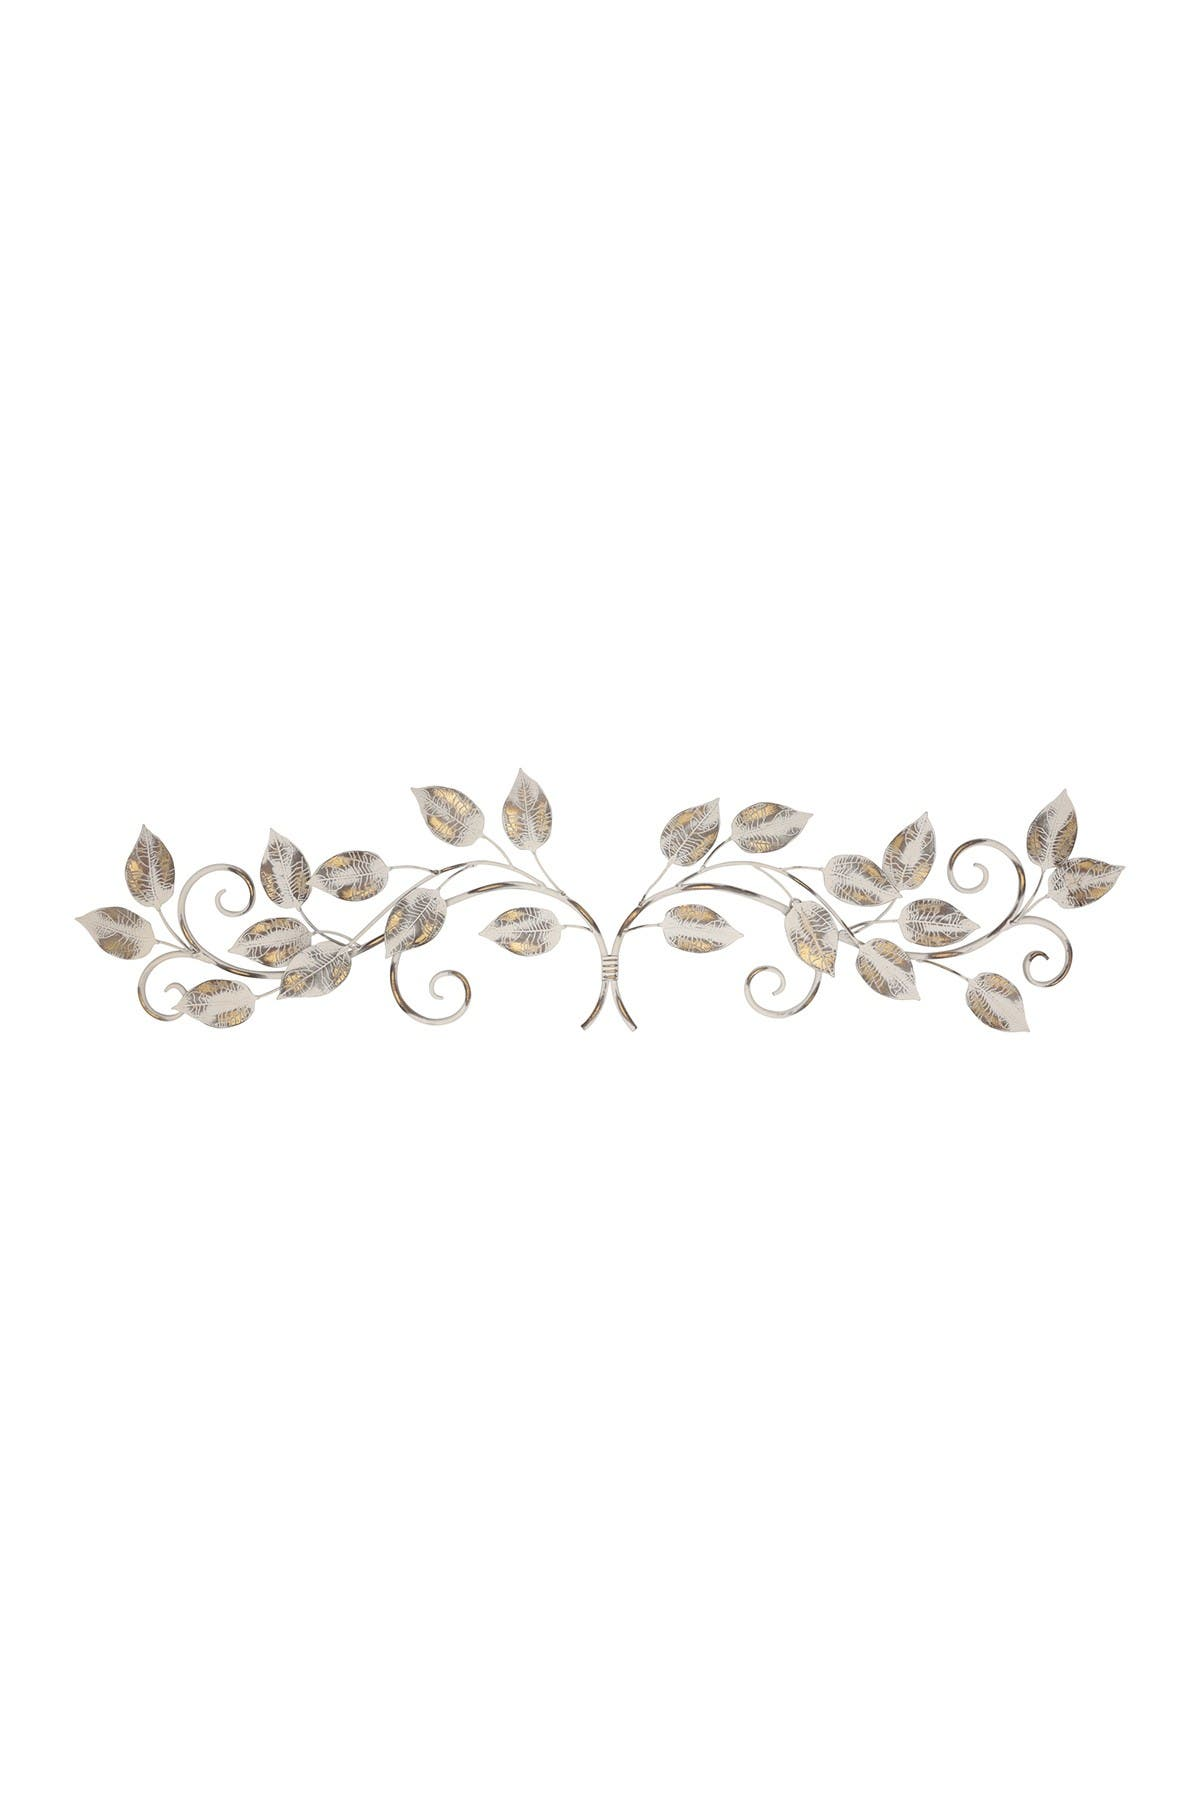 Image of Stratton Home White & Bronze Distressed Leaves Over the Door Wall Decor